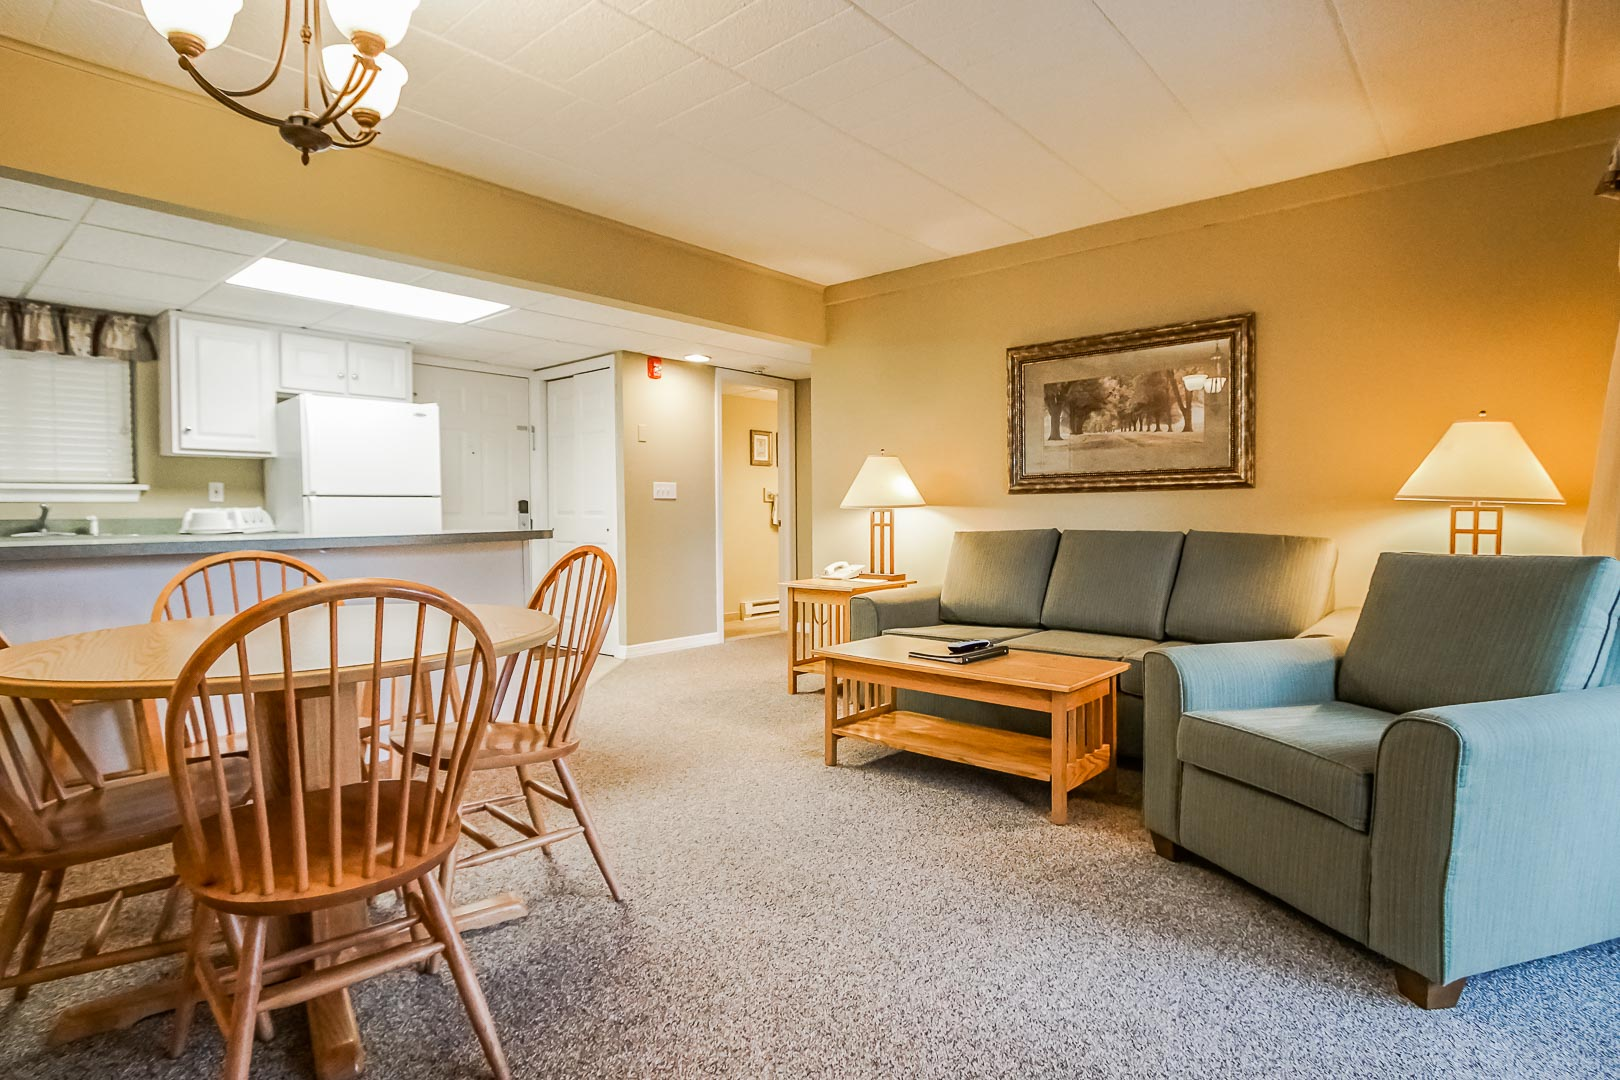 A cozy dining and living room area at VRI's Tanglwood Resort in Pennsylvania.